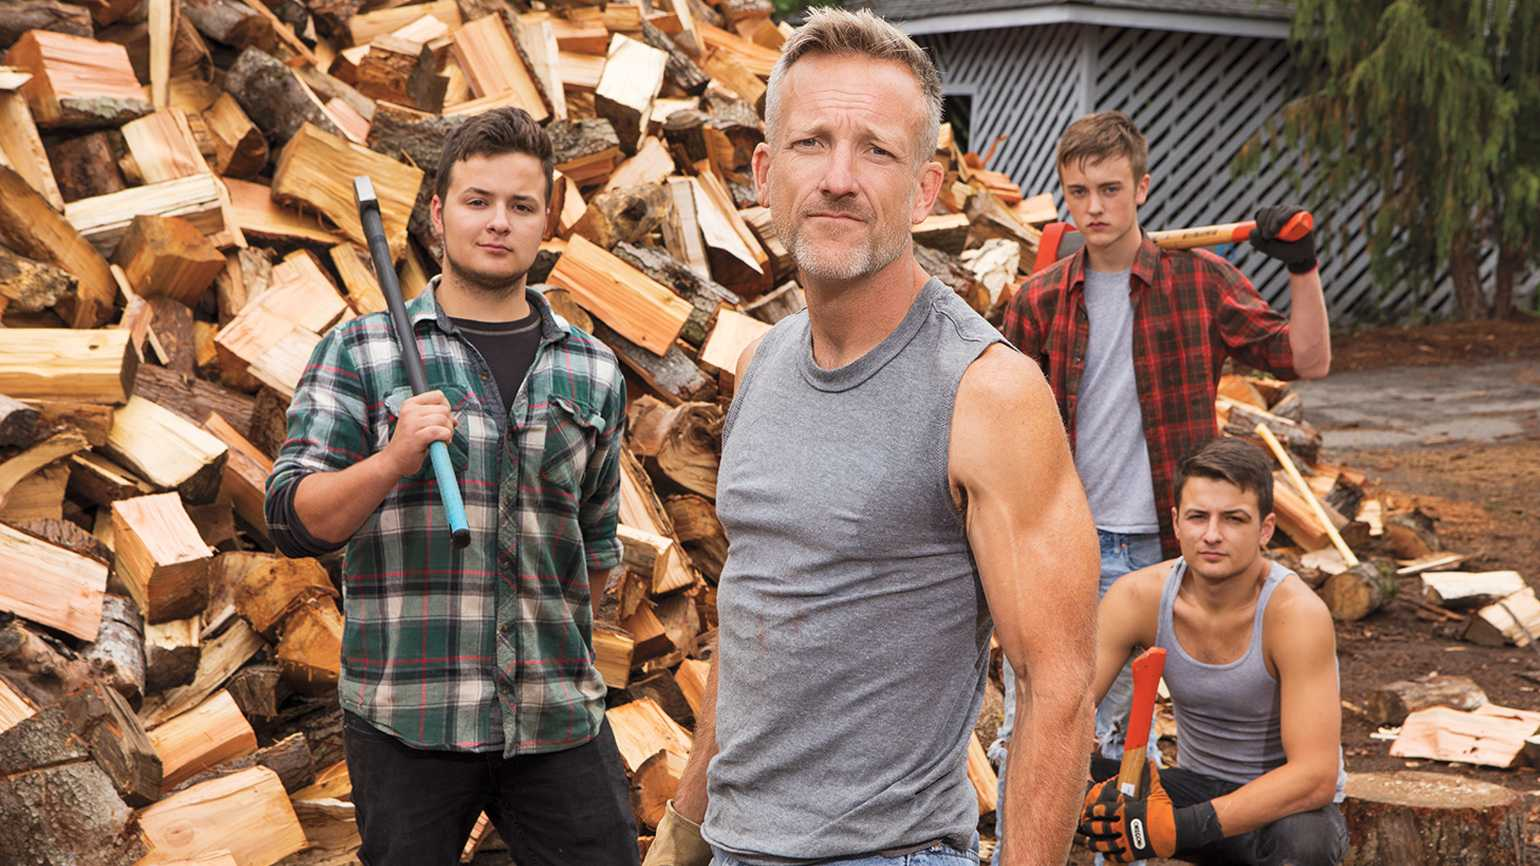 Shane McDaniel and his sons (from left) Harrison, Wyatt and Henry in front of their pile of charity firewood.